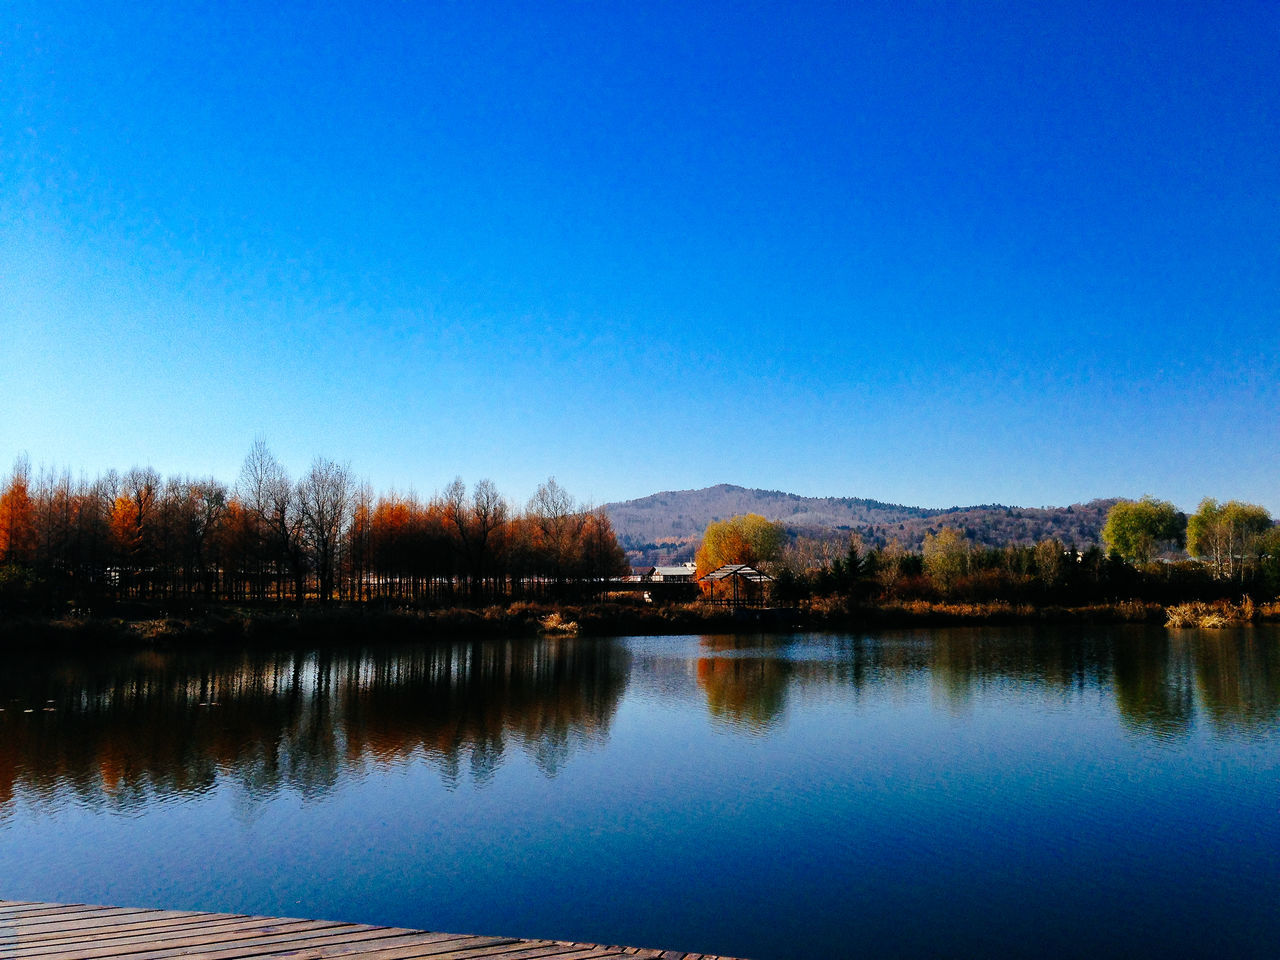 reflection, blue, tranquil scene, water, nature, tranquility, scenics, mountain, beauty in nature, lake, no people, outdoors, clear sky, tree, built structure, landscape, architecture, mountain range, sky, day